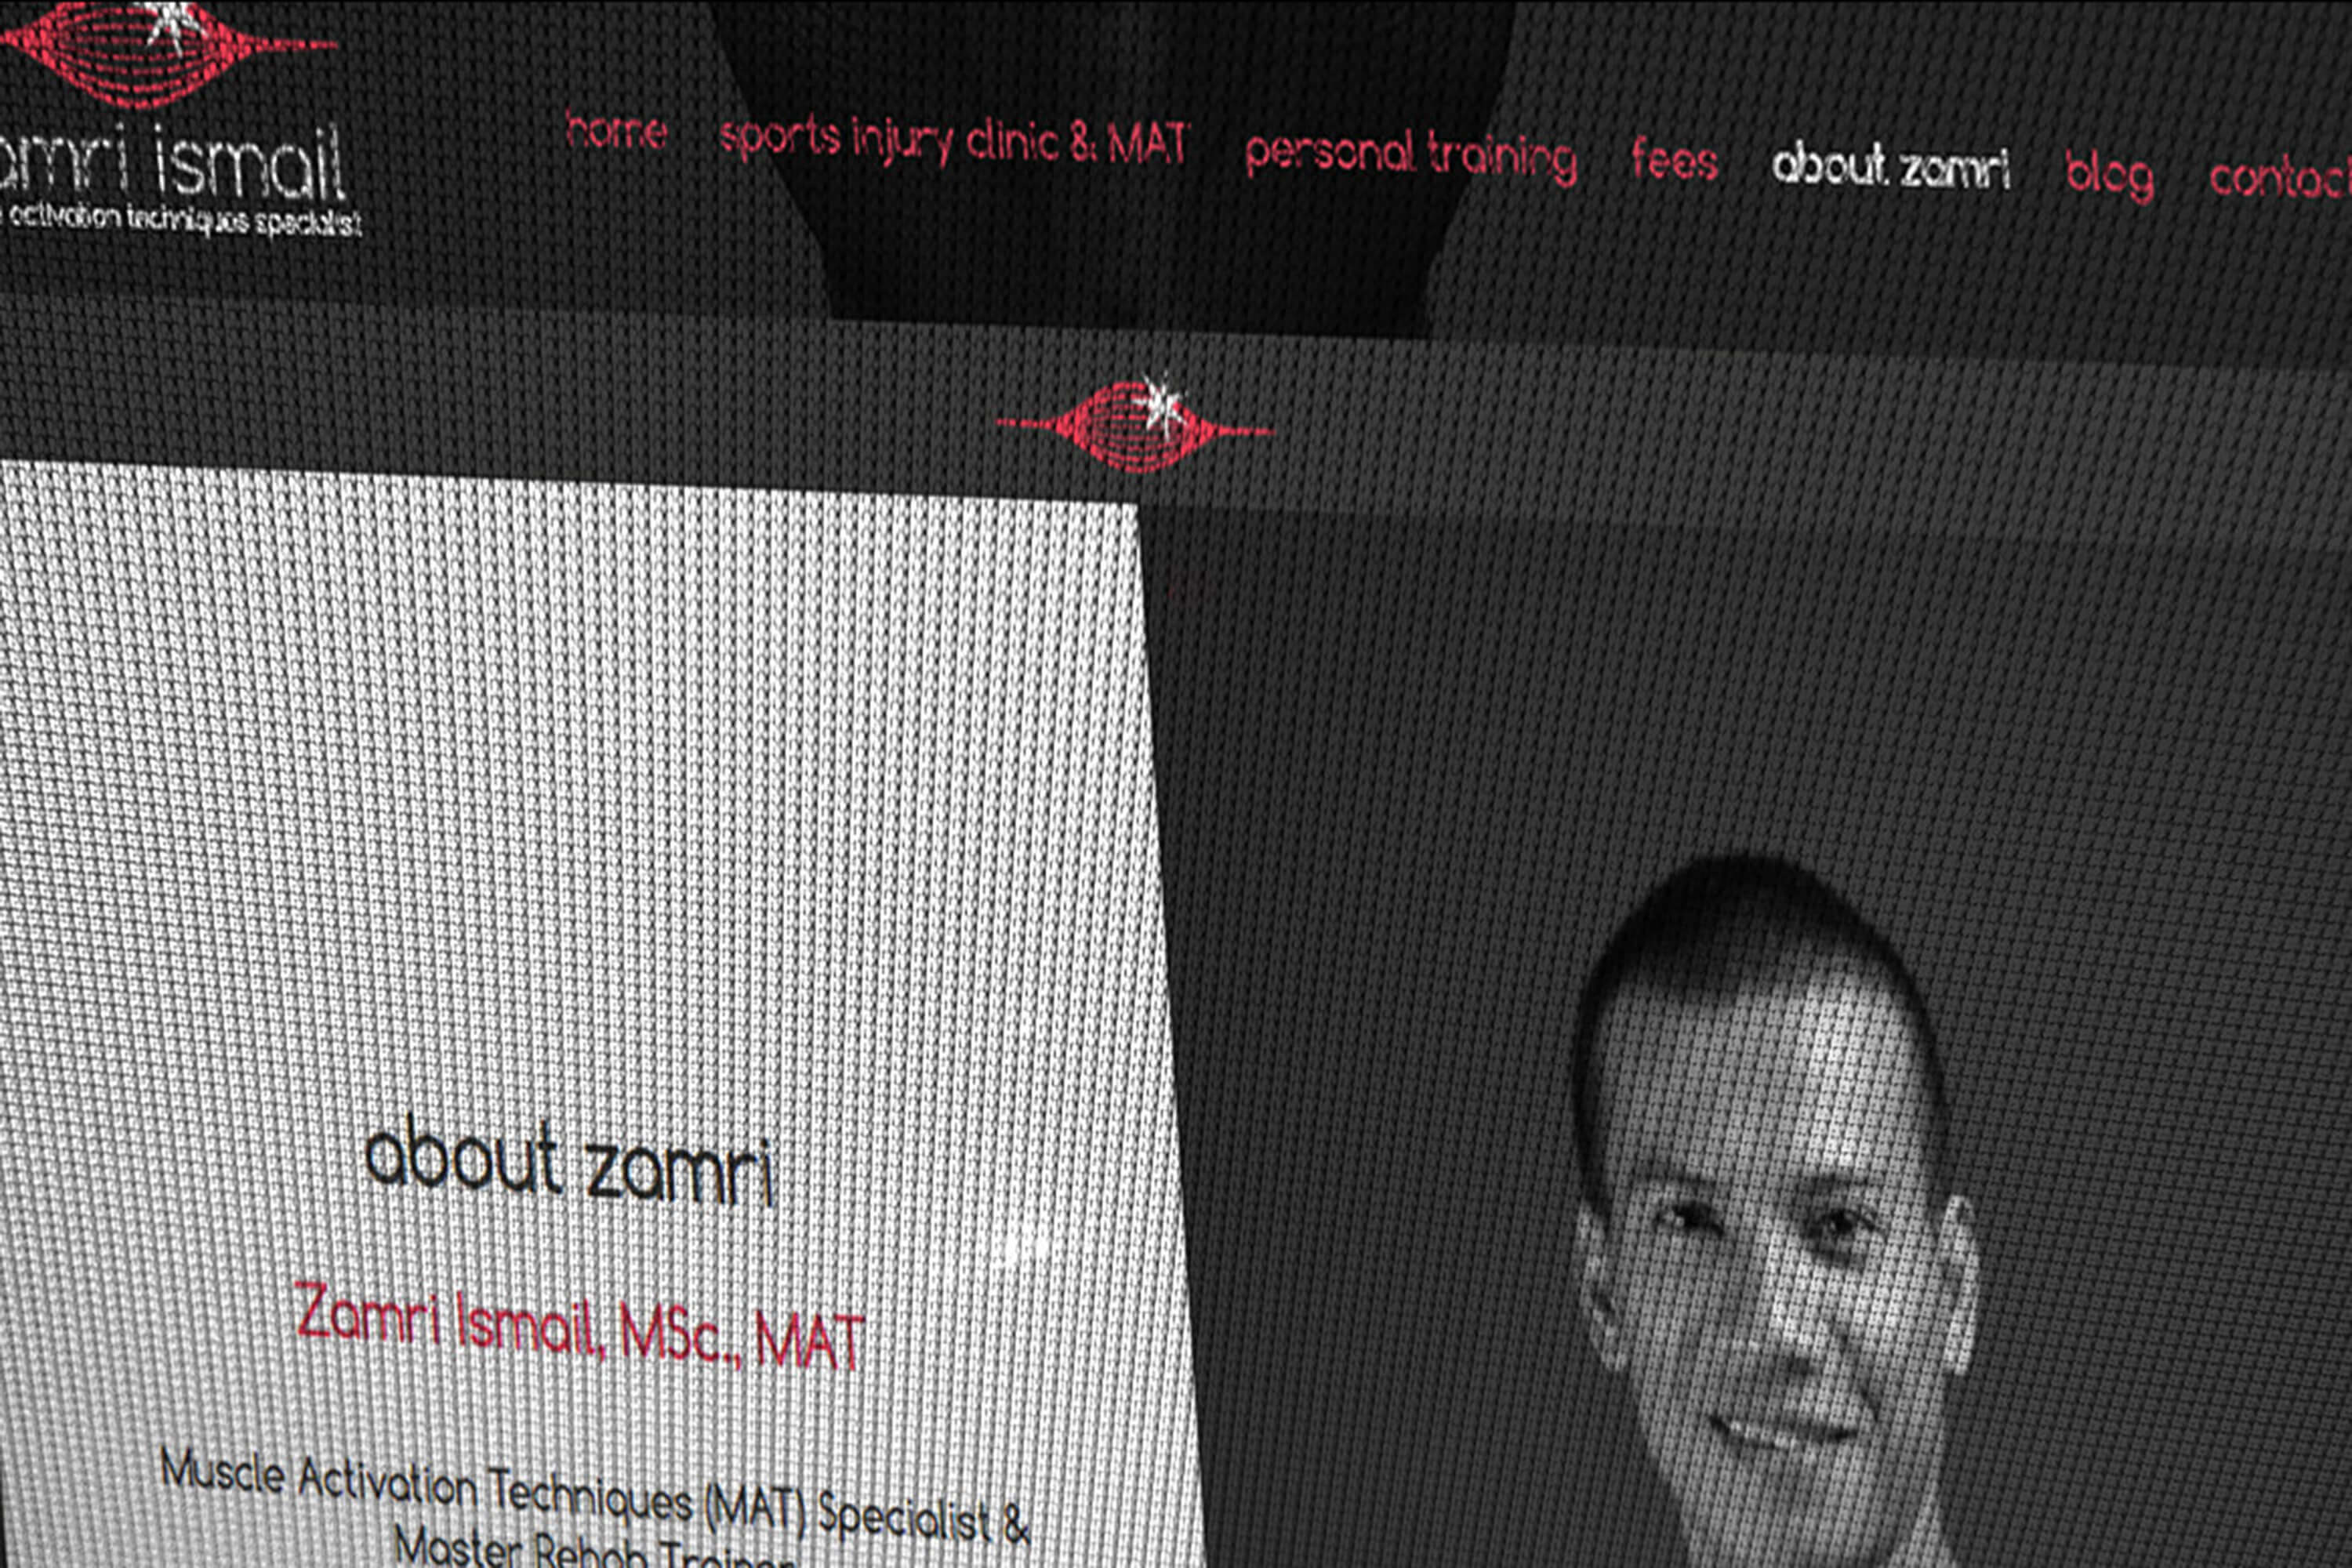 Close up detail of the Zamri Ismail website as it appears on screen